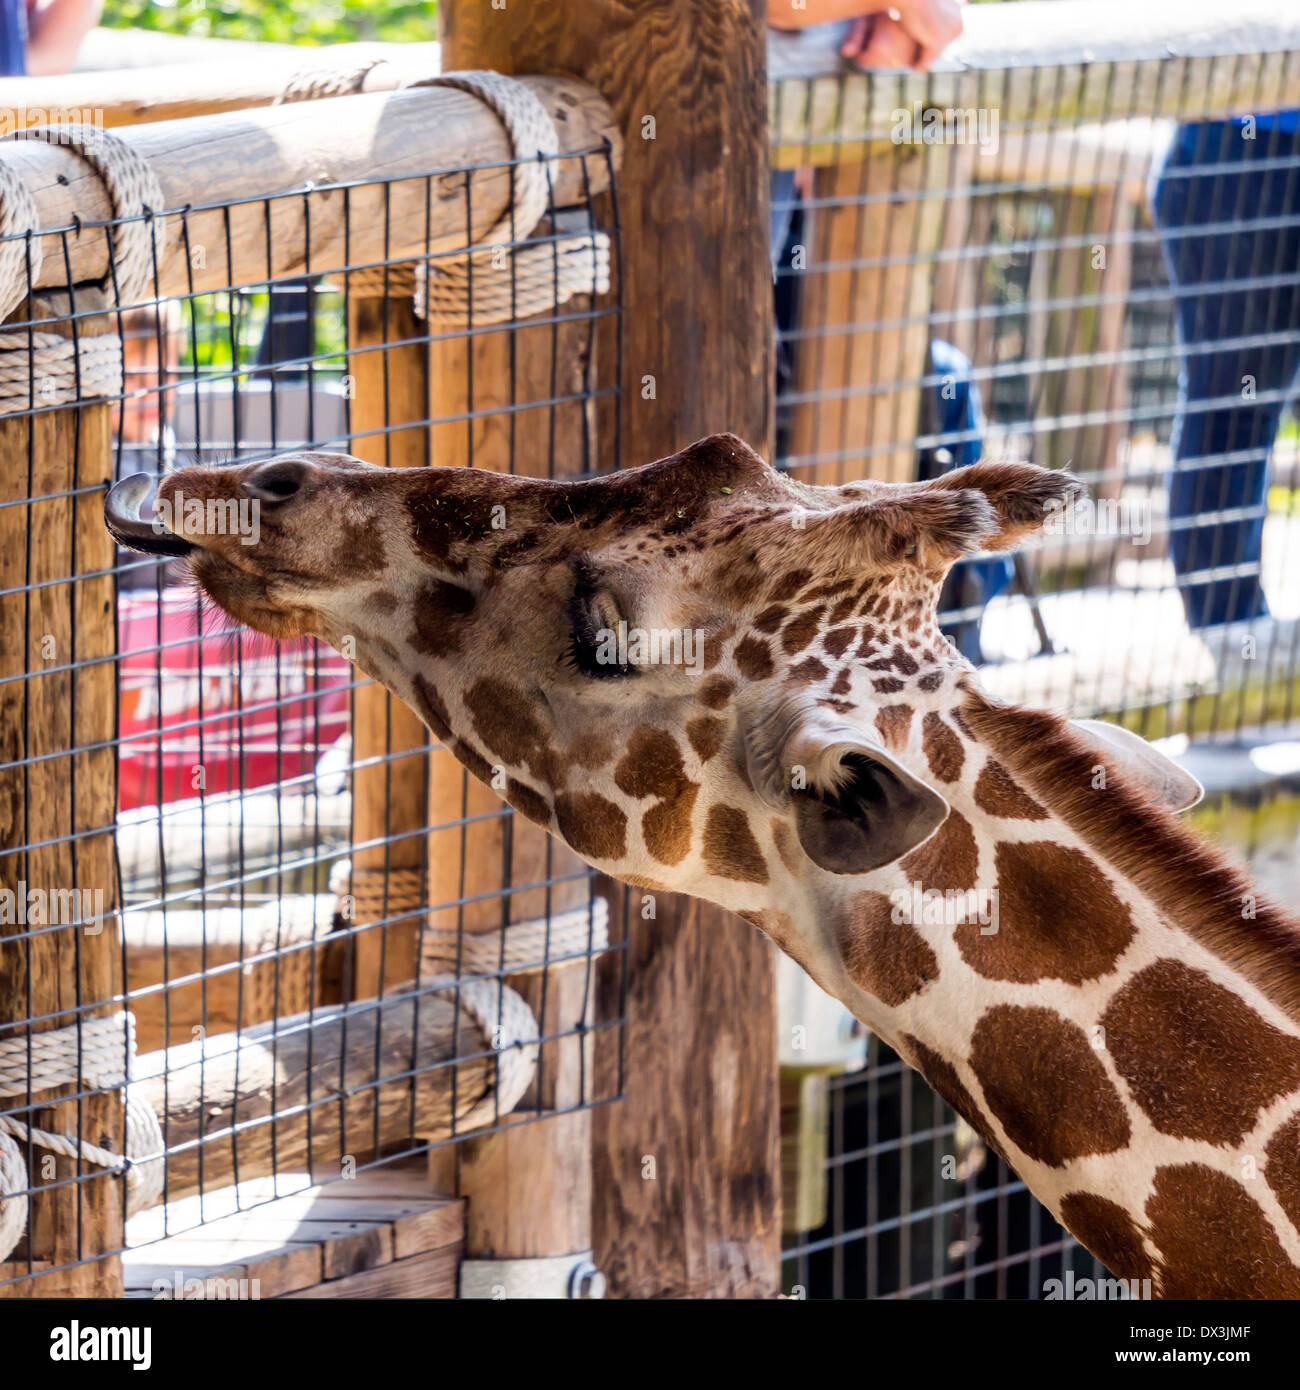 West African giraffe (Giraffa camelopardalis), an even-toed ungulate mammal and largest ruminant licking with long tongue. - Stock Image